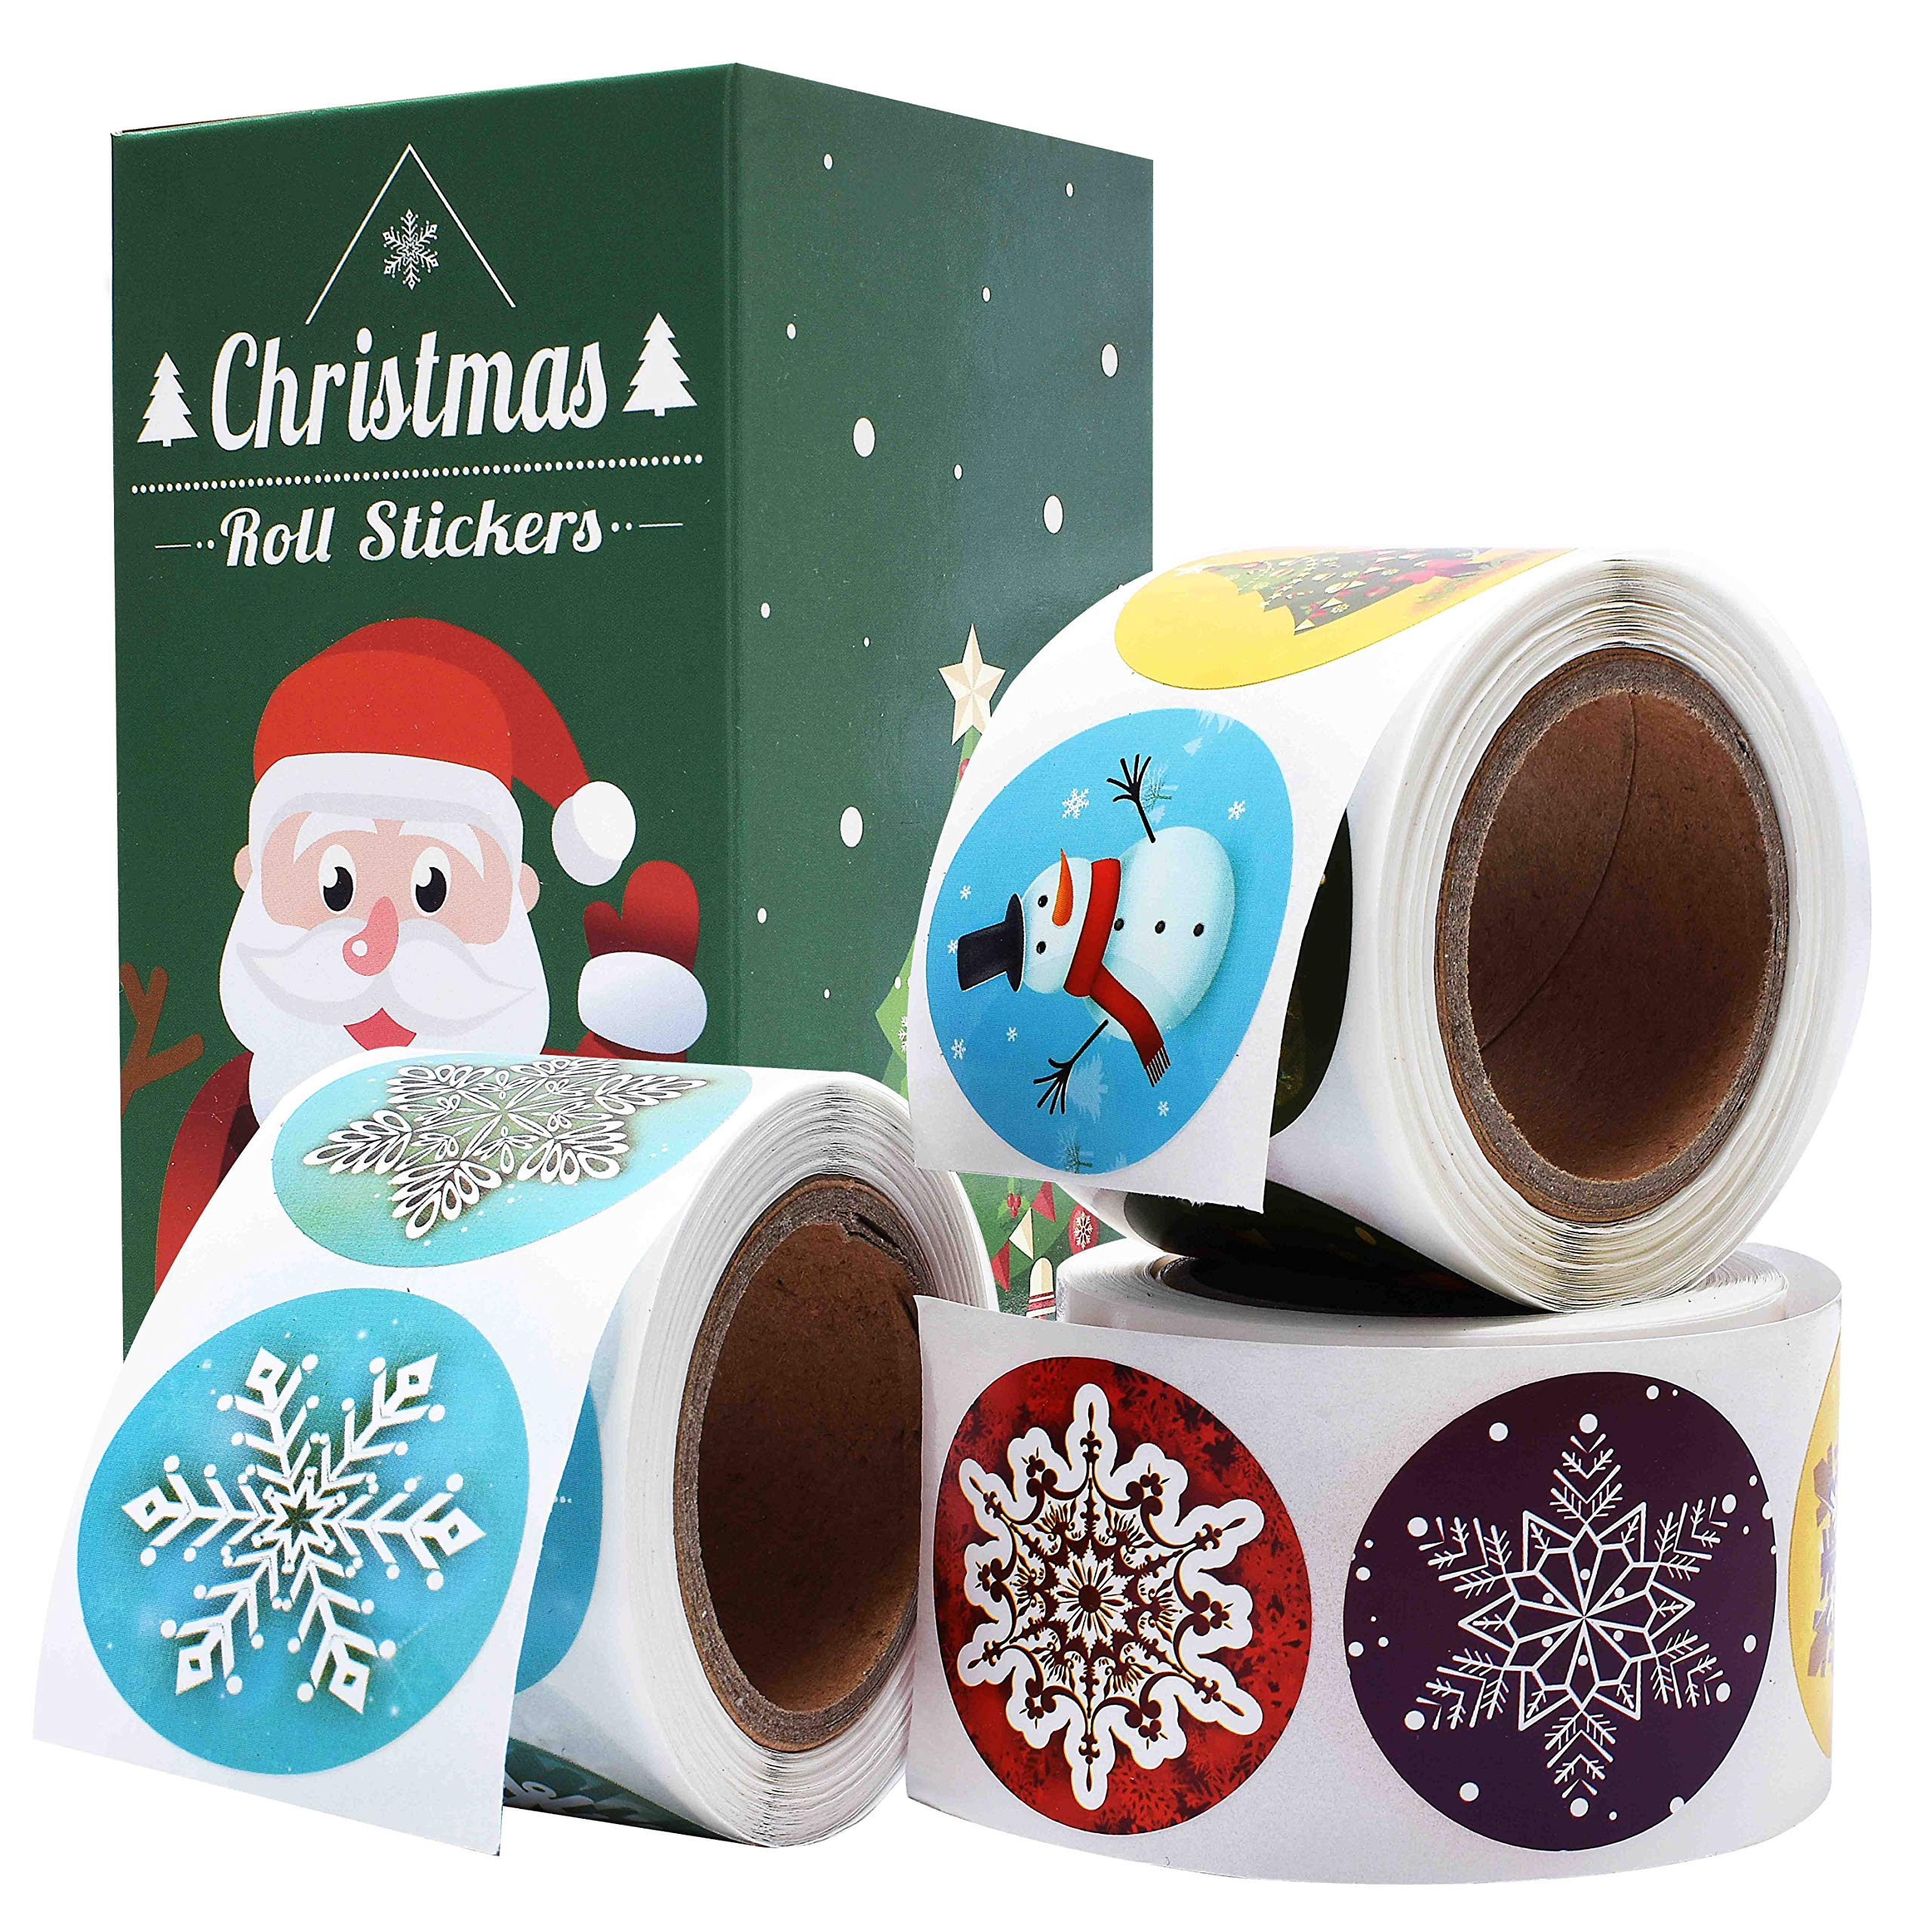 Cualfec Christmas Stickers Roll Winter Holiday Stickers 1.5'' Round - 21 Designs Assortment 630 Stickers by Cualfec